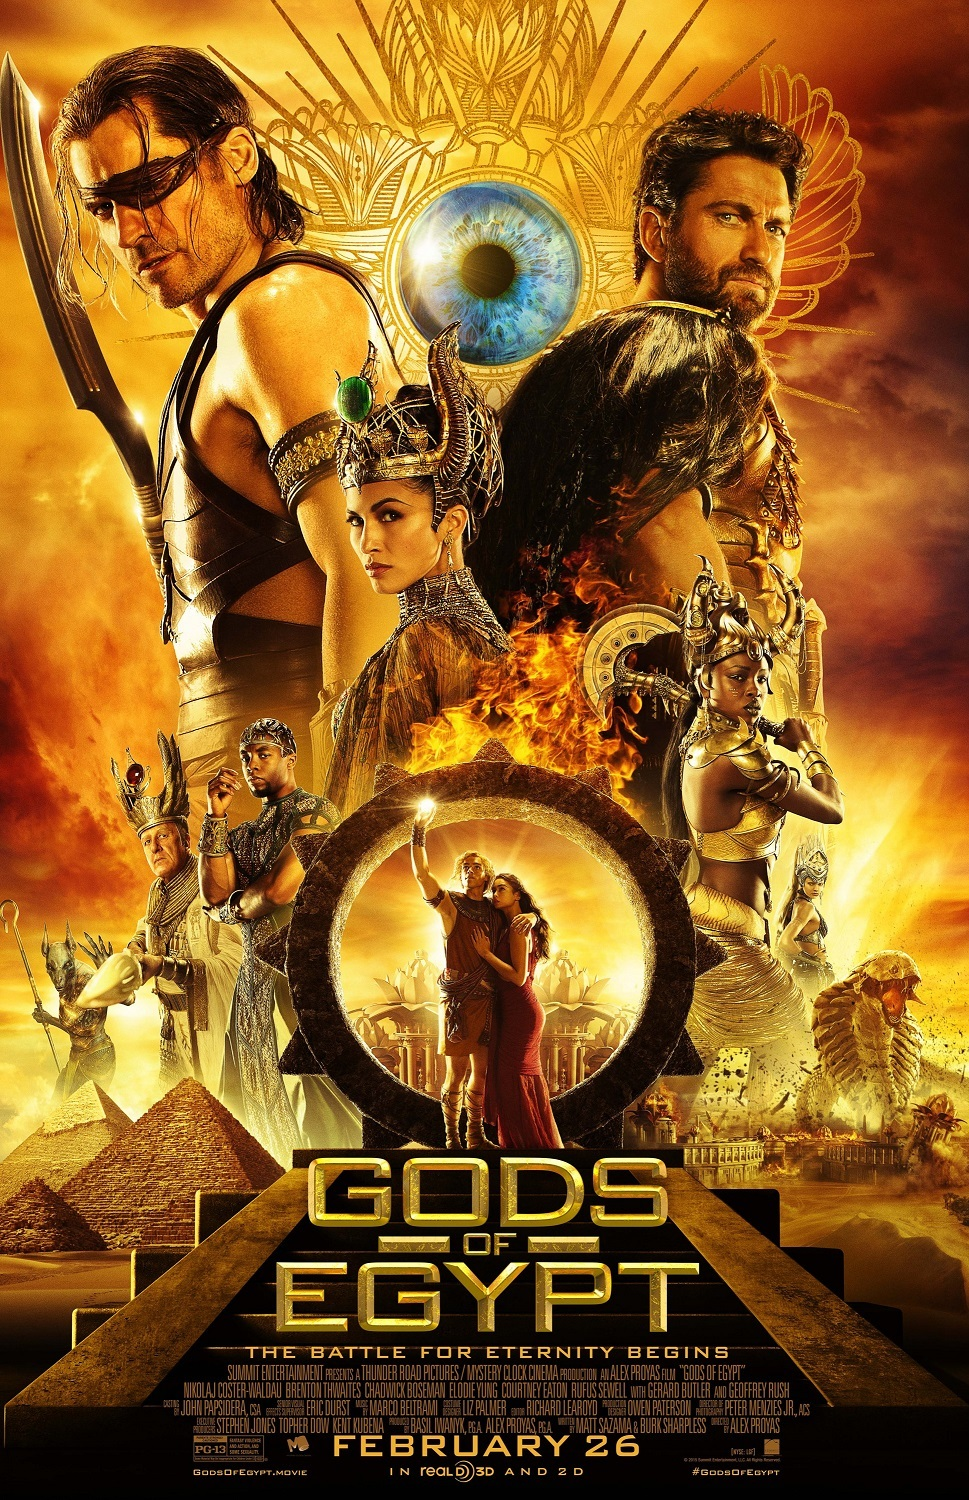 The creators of the film Gods of Egypt criticized for casting 11/30/2015 97